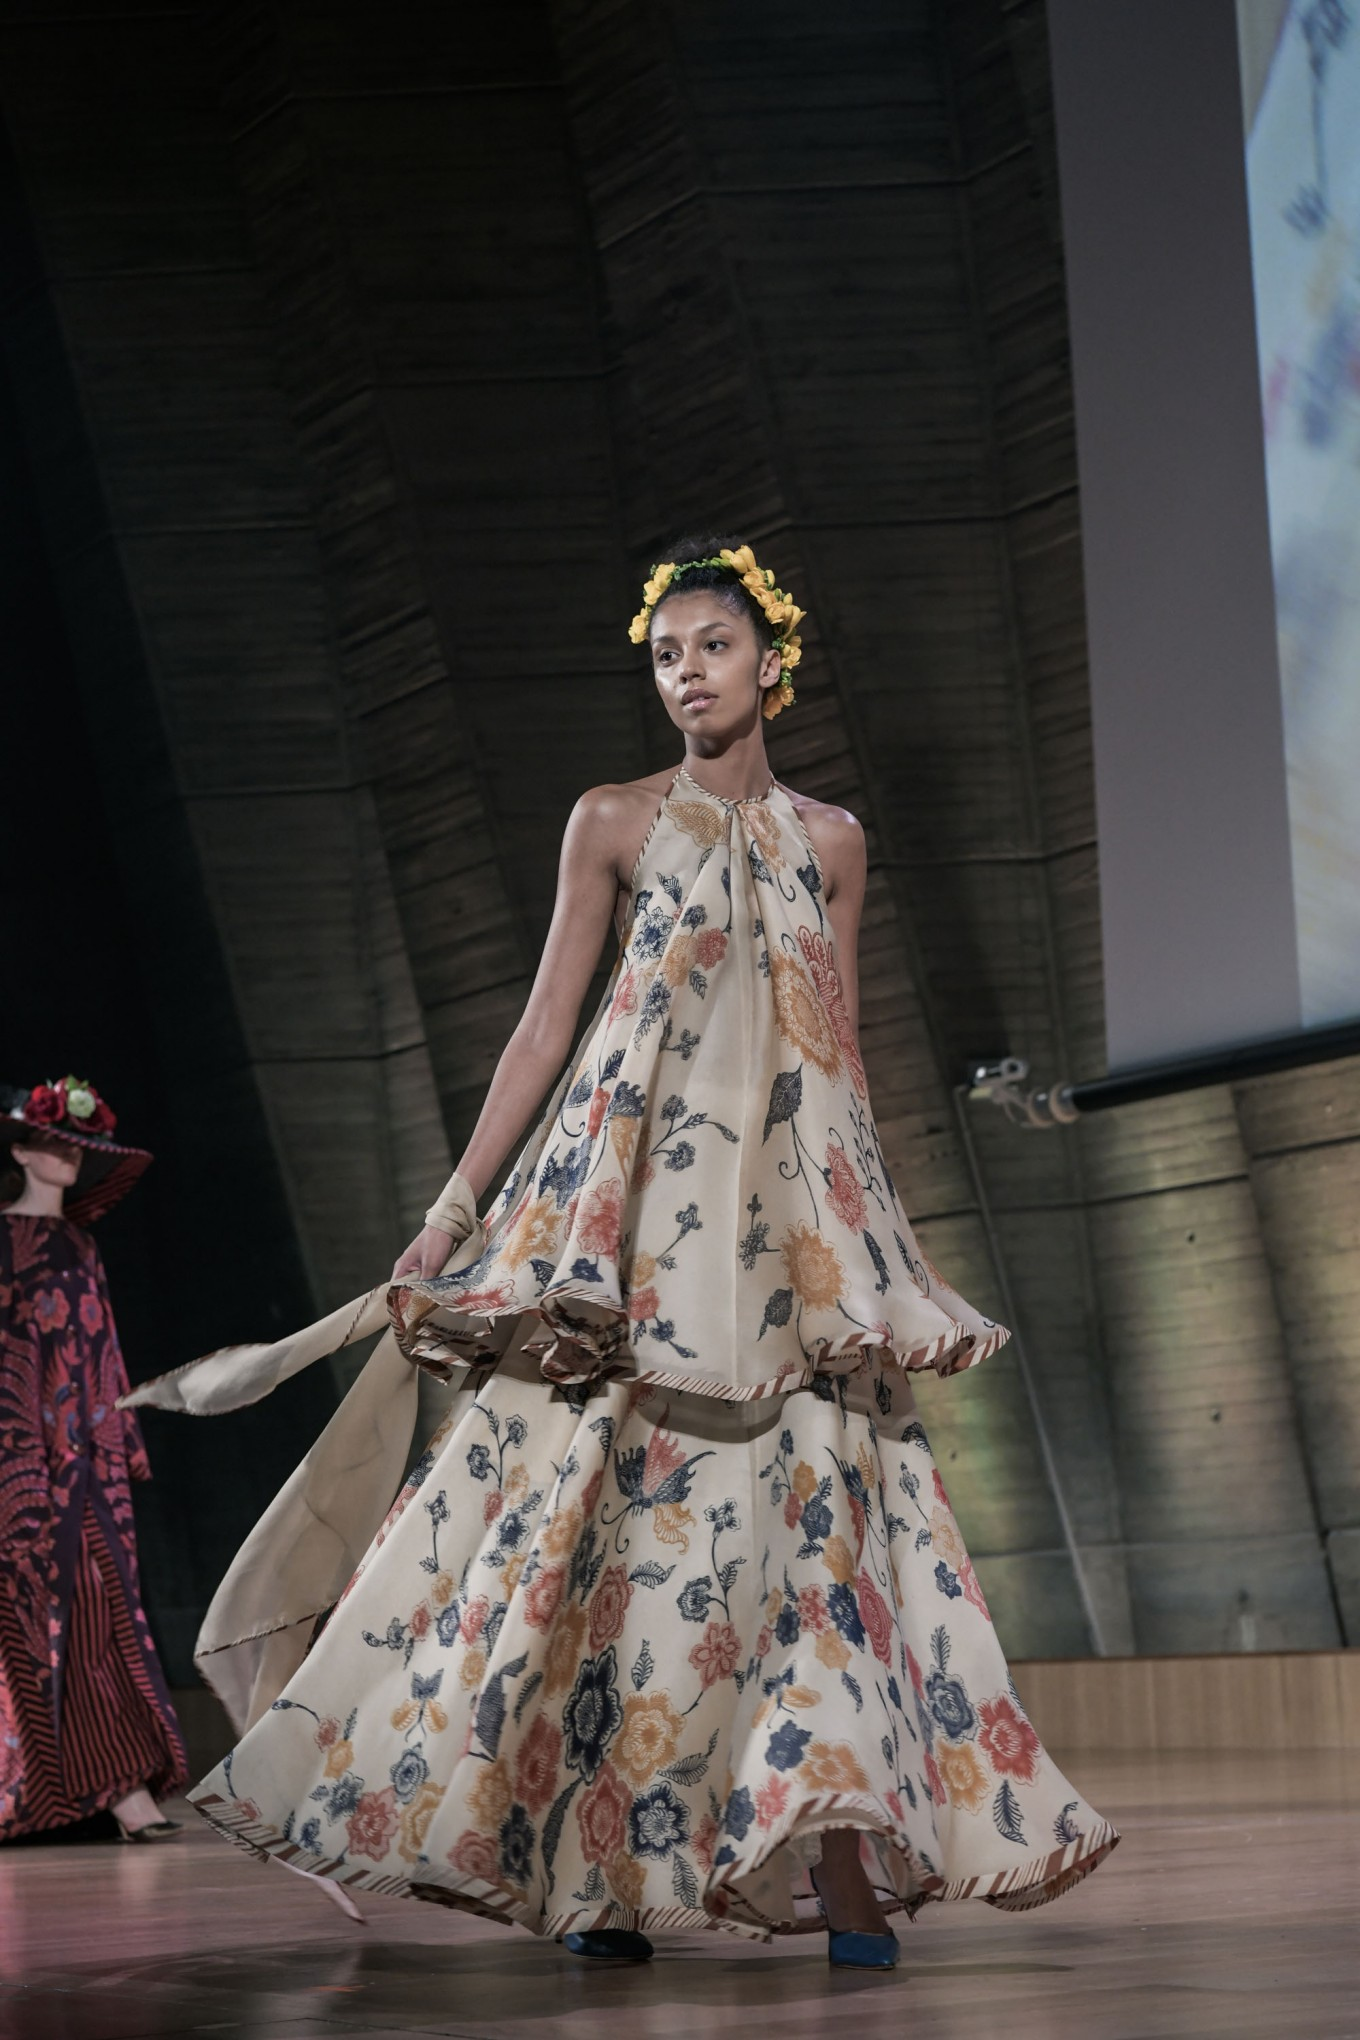 Edward Hutabarat features a feminine and frilly dress decorated with a subtle batik print.